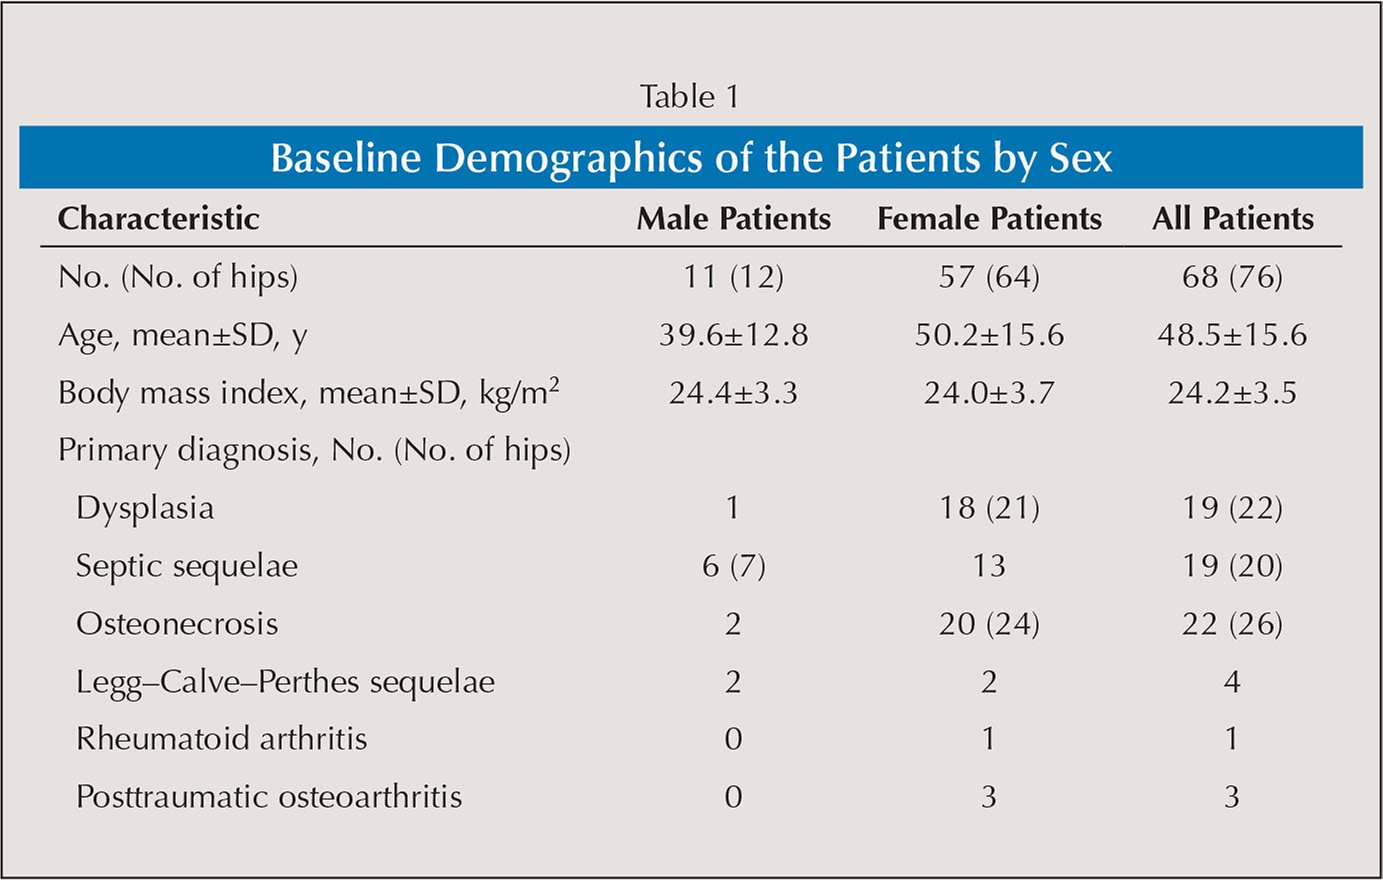 Baseline Demographics of the Patients by Sex